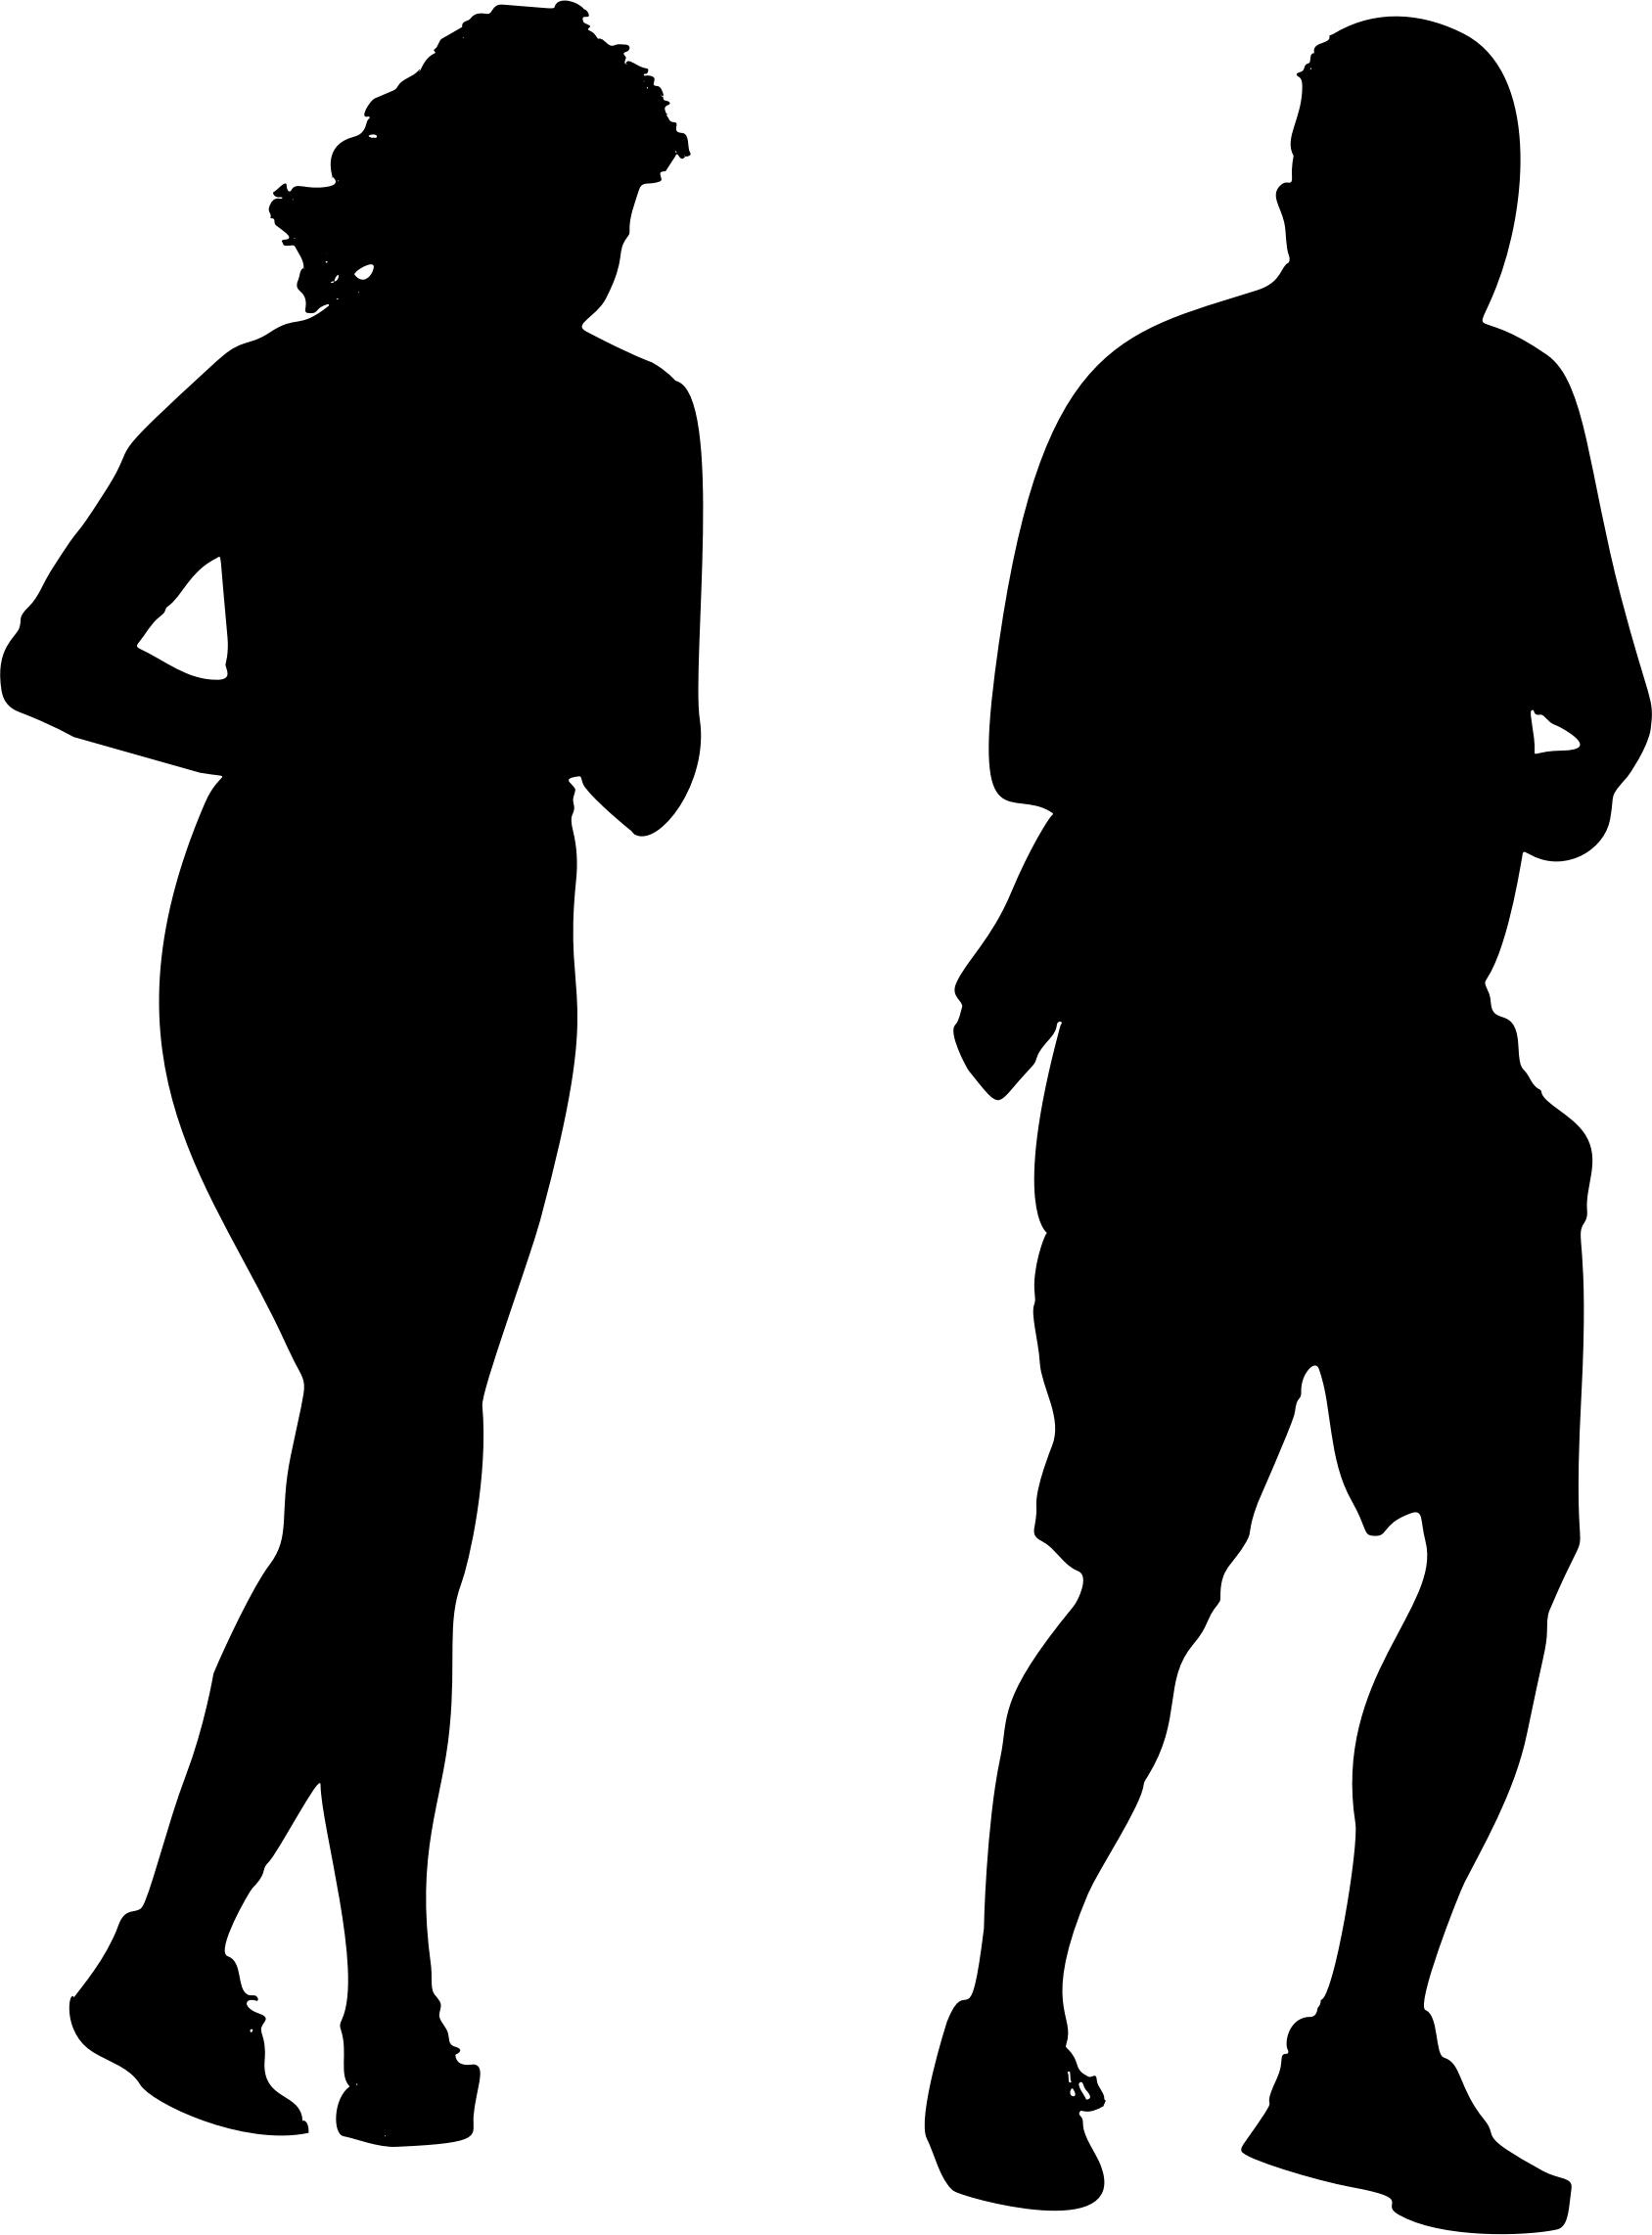 1688x2284 Free Couple Silhouette Icons Png, Couple S Lhouette Images